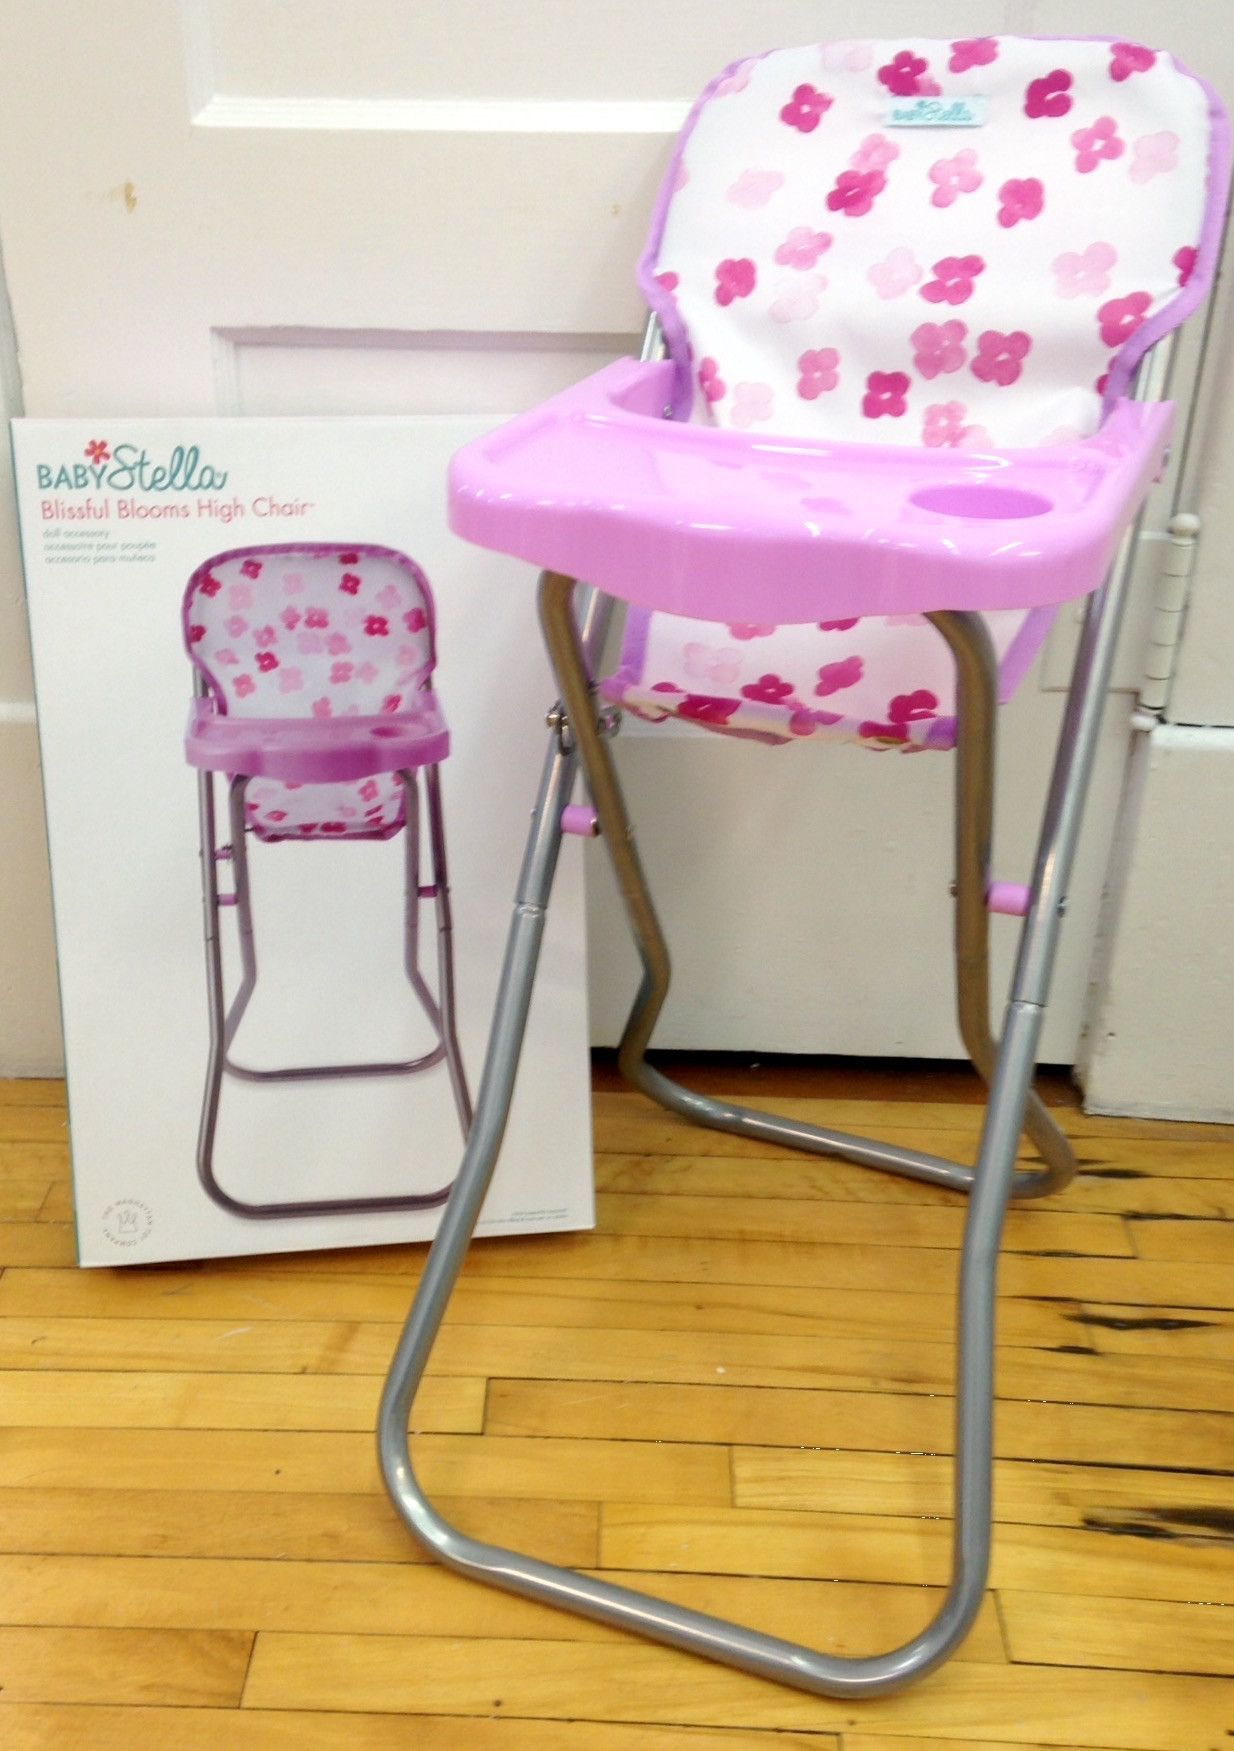 Baby Stella Blissful Blooms High Chair With Images High Chair